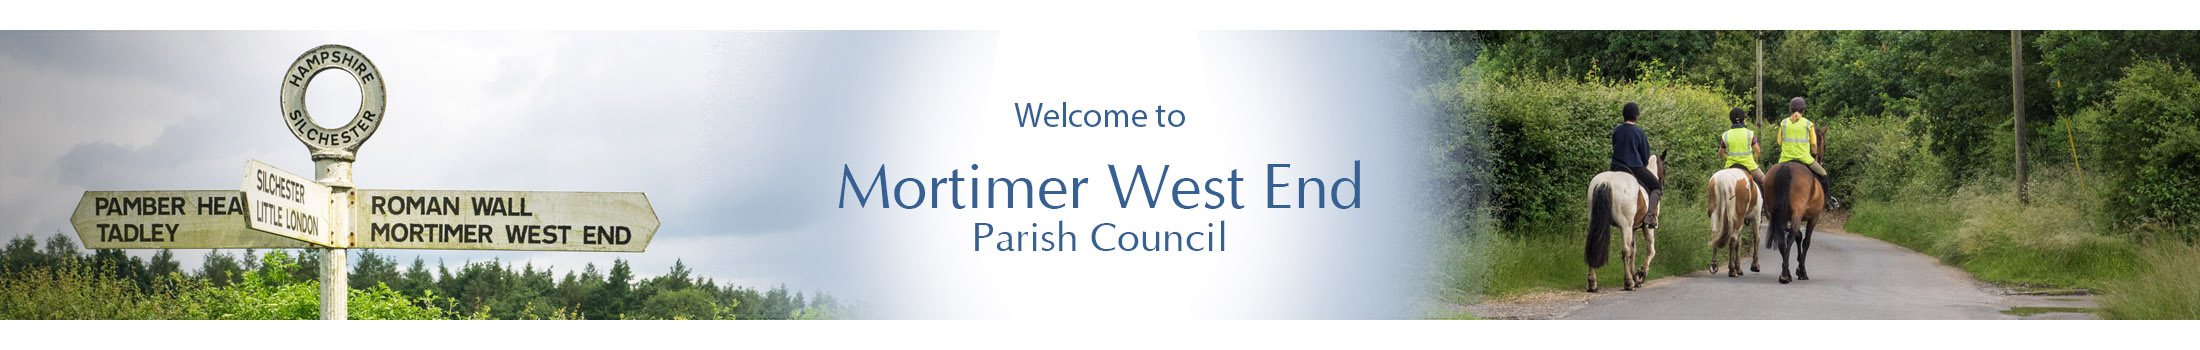 Header Image for Mortimer West End Parish Council